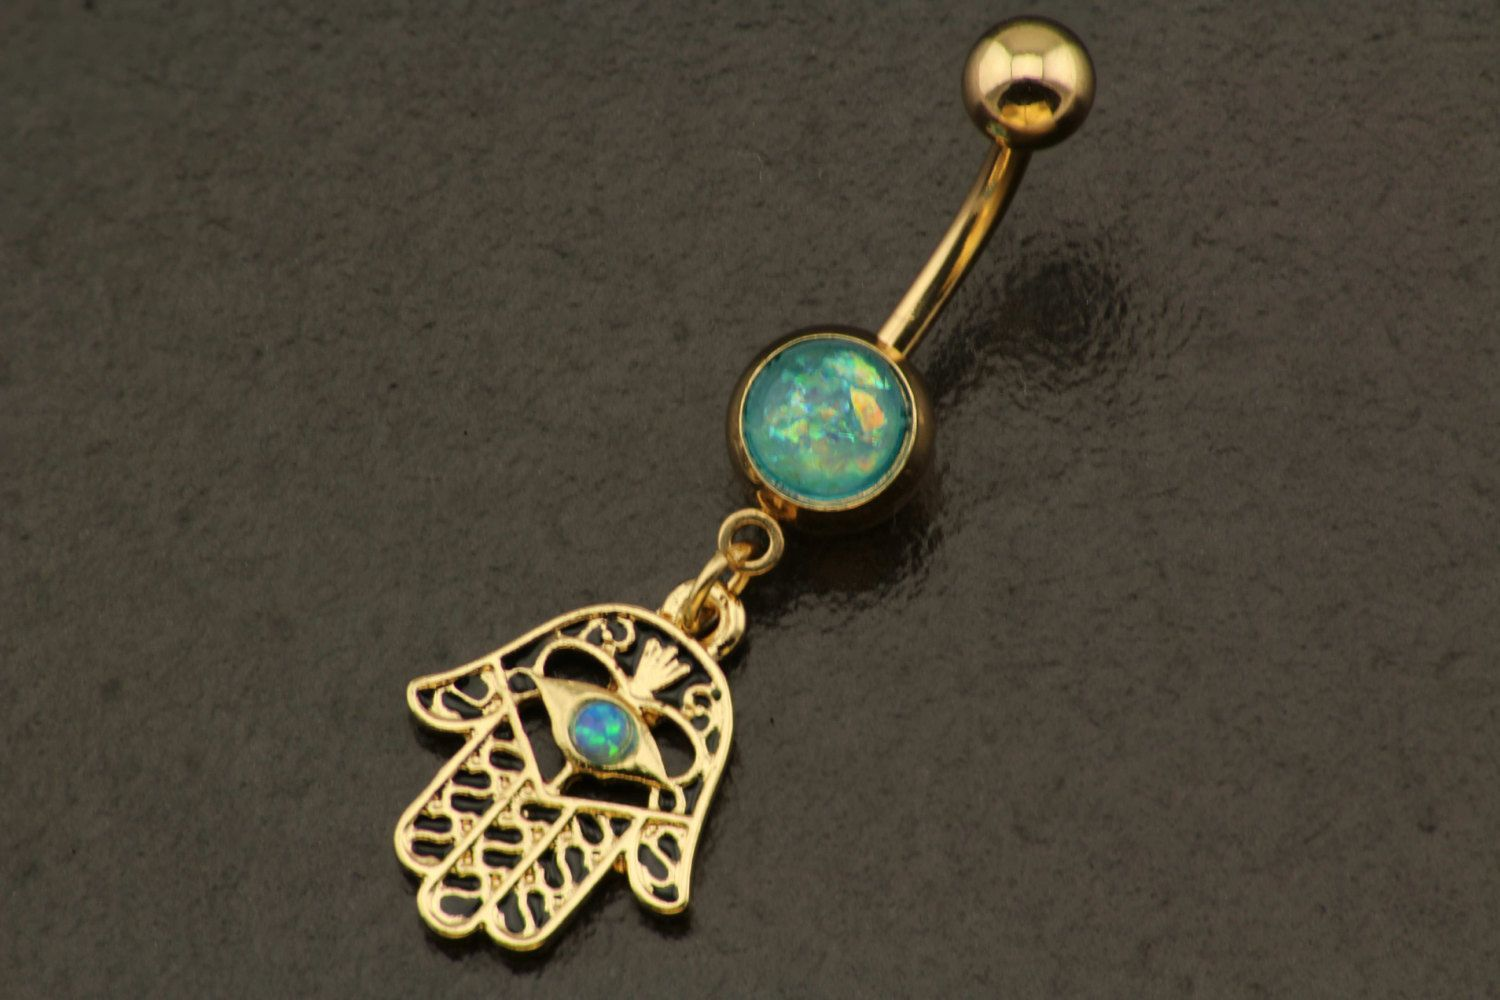 Belly button piercing jewellery  Real Opal Belly Button Ring Jewelry Gold Hamsa Bohemian Belly Ring